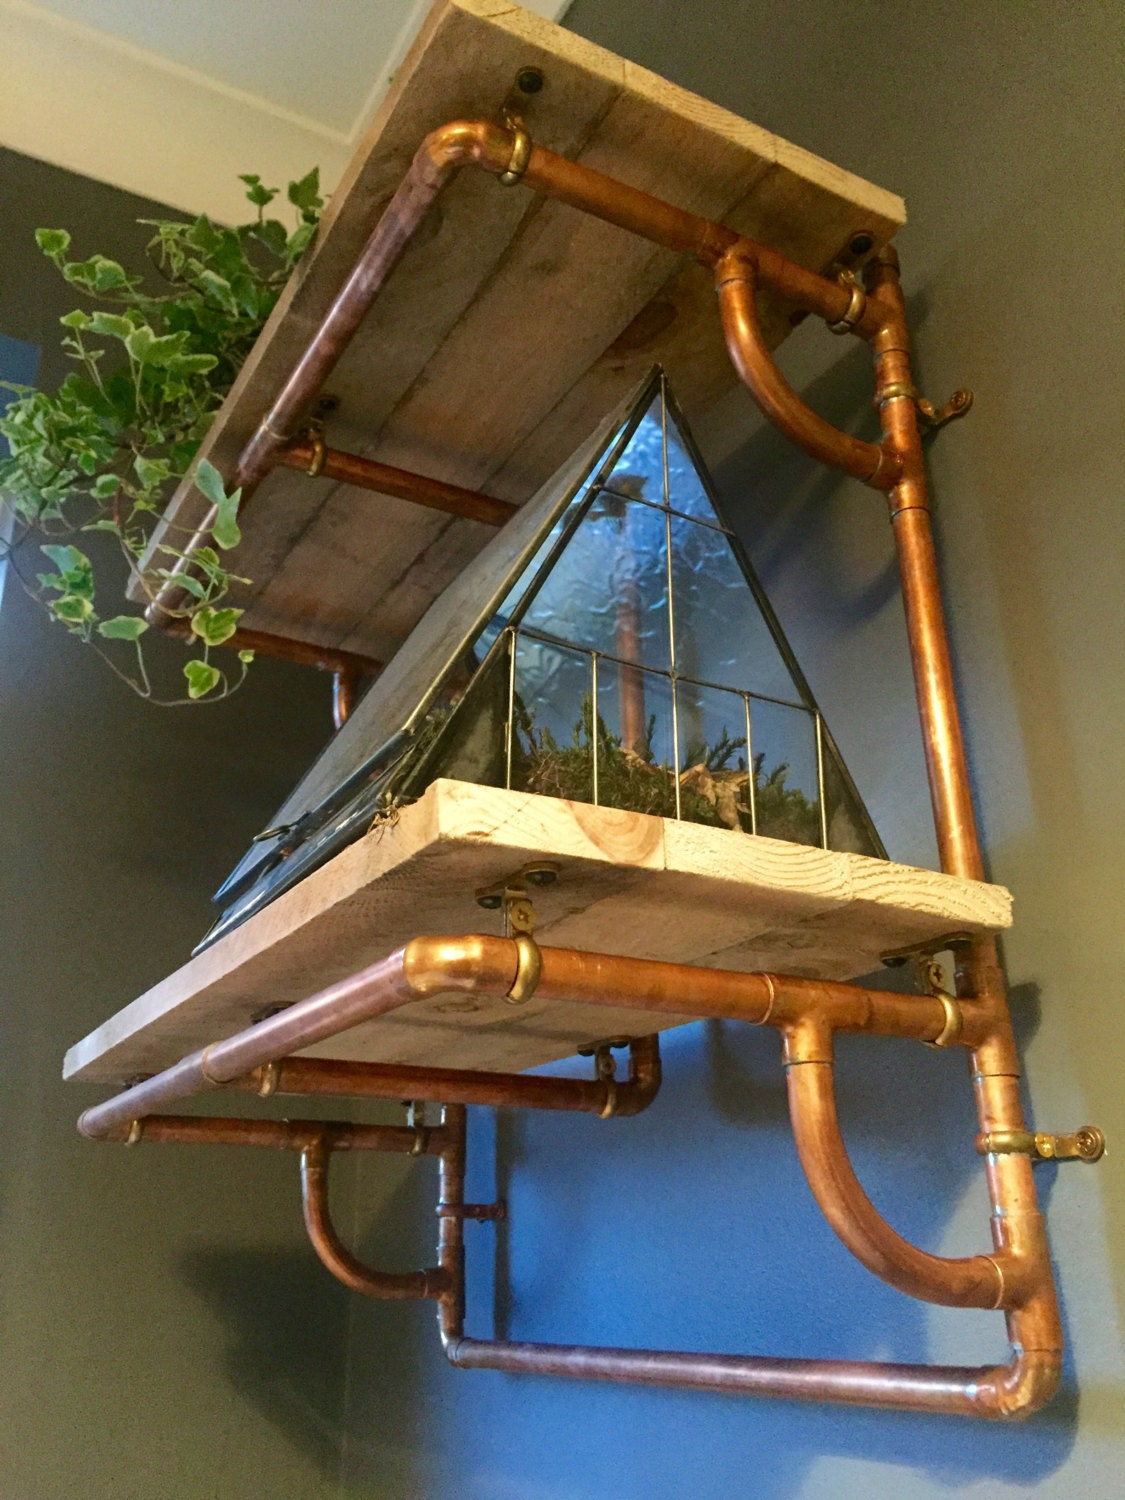 Superb img of Copper Pipe and Reclaimed Wood Shelving Industrial by PlankandPipe with #9E682D color and 1125x1500 pixels